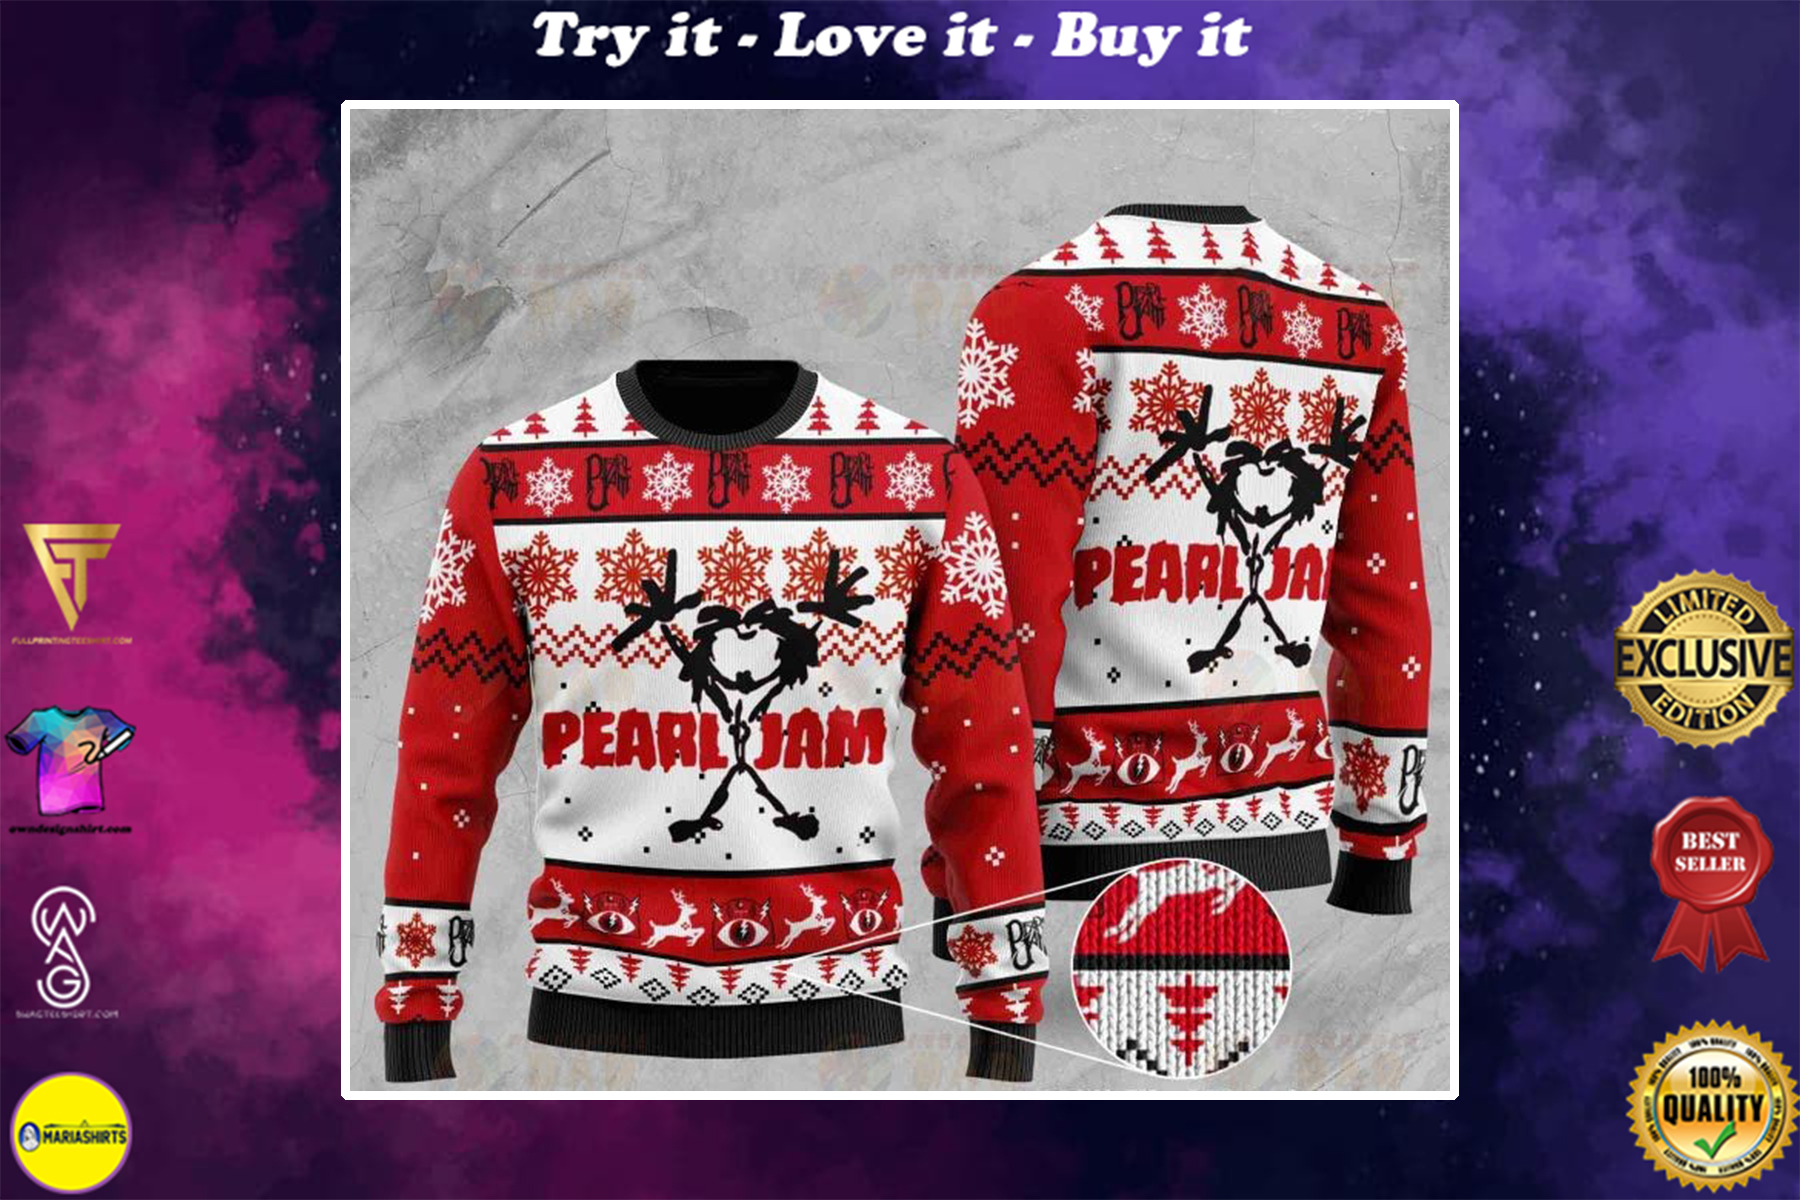 [special edition] pearl jam rock band all over printed ugly christmas sweater - maria